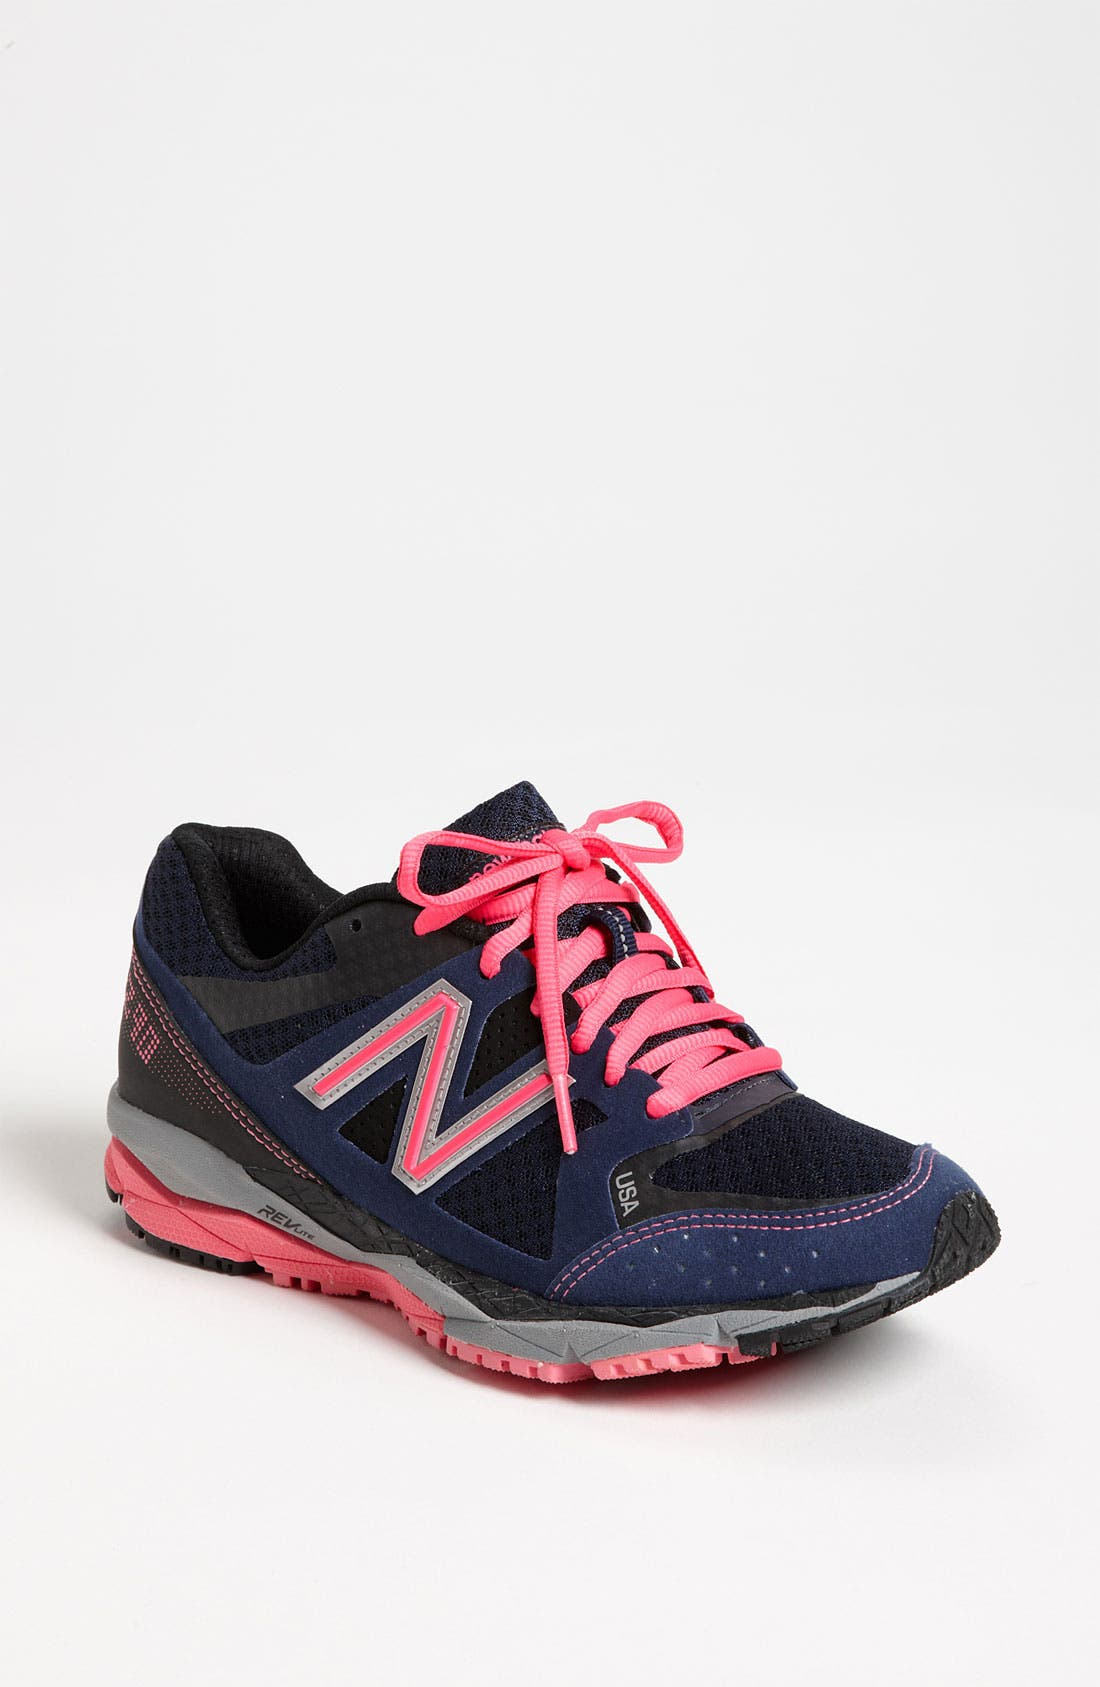 Alternate Image 1 Selected - New Balance '1290' Running Shoe (Women)